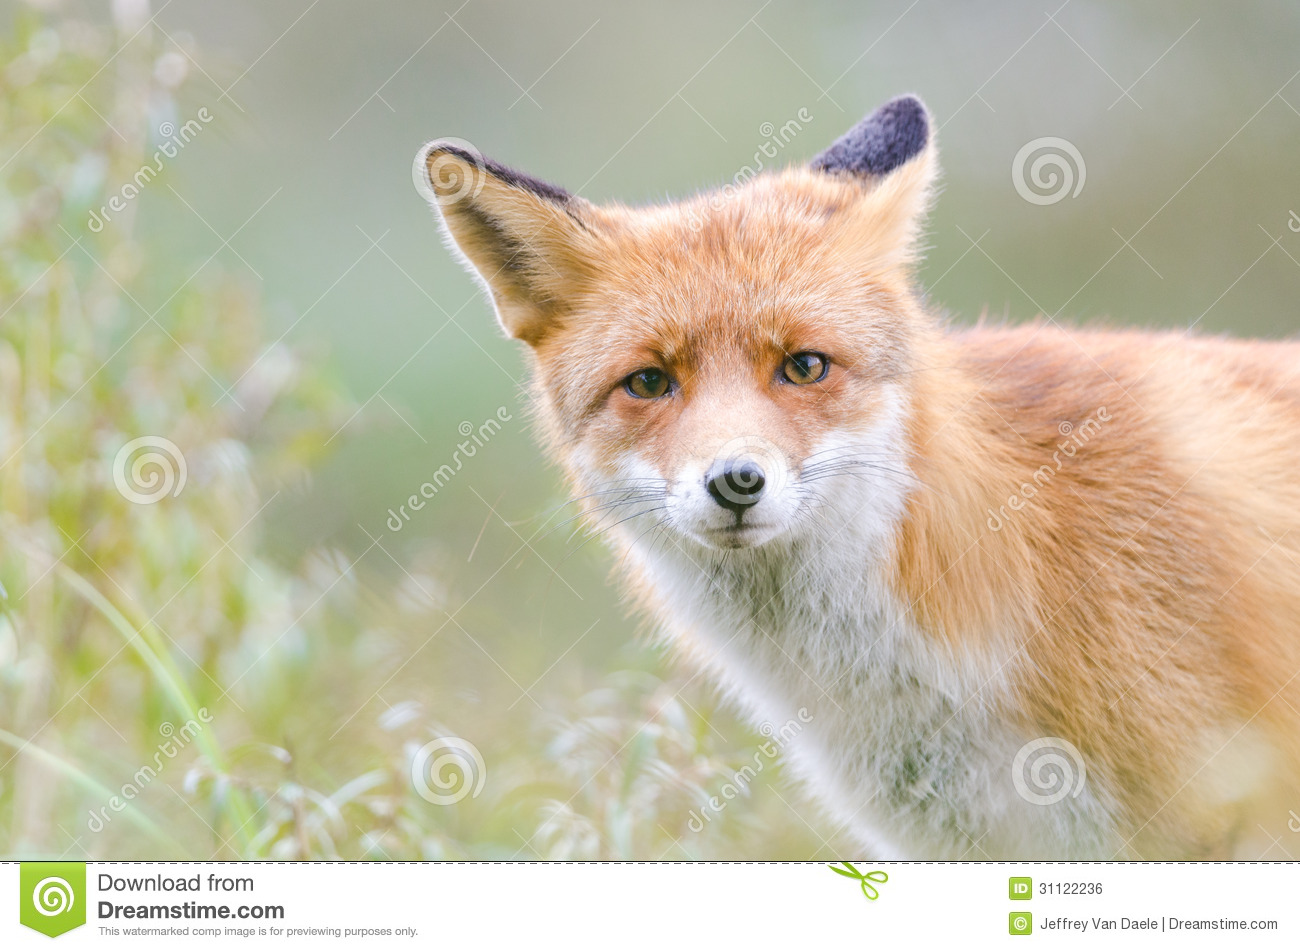 How Can You Find Images That Are Royalty Free Red Fox Royalty Free Stock